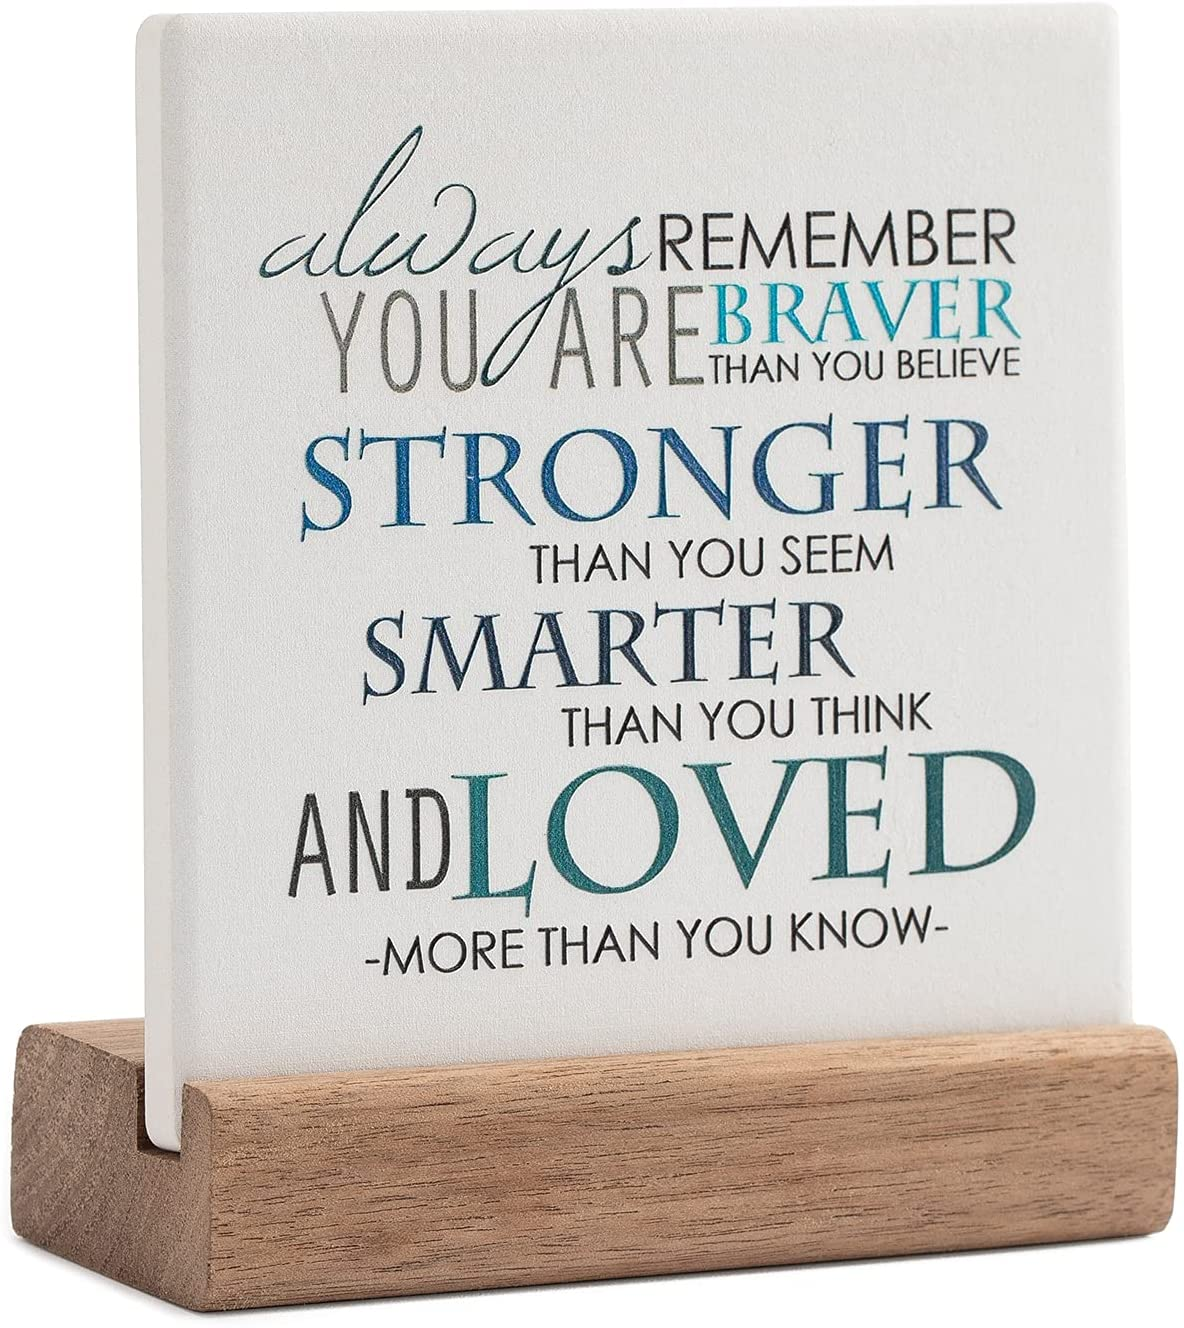 Lukiejac Inspirational Quotes Desk Surprise price Decor Sales of SALE items from new works Best Gifts Women Fr For